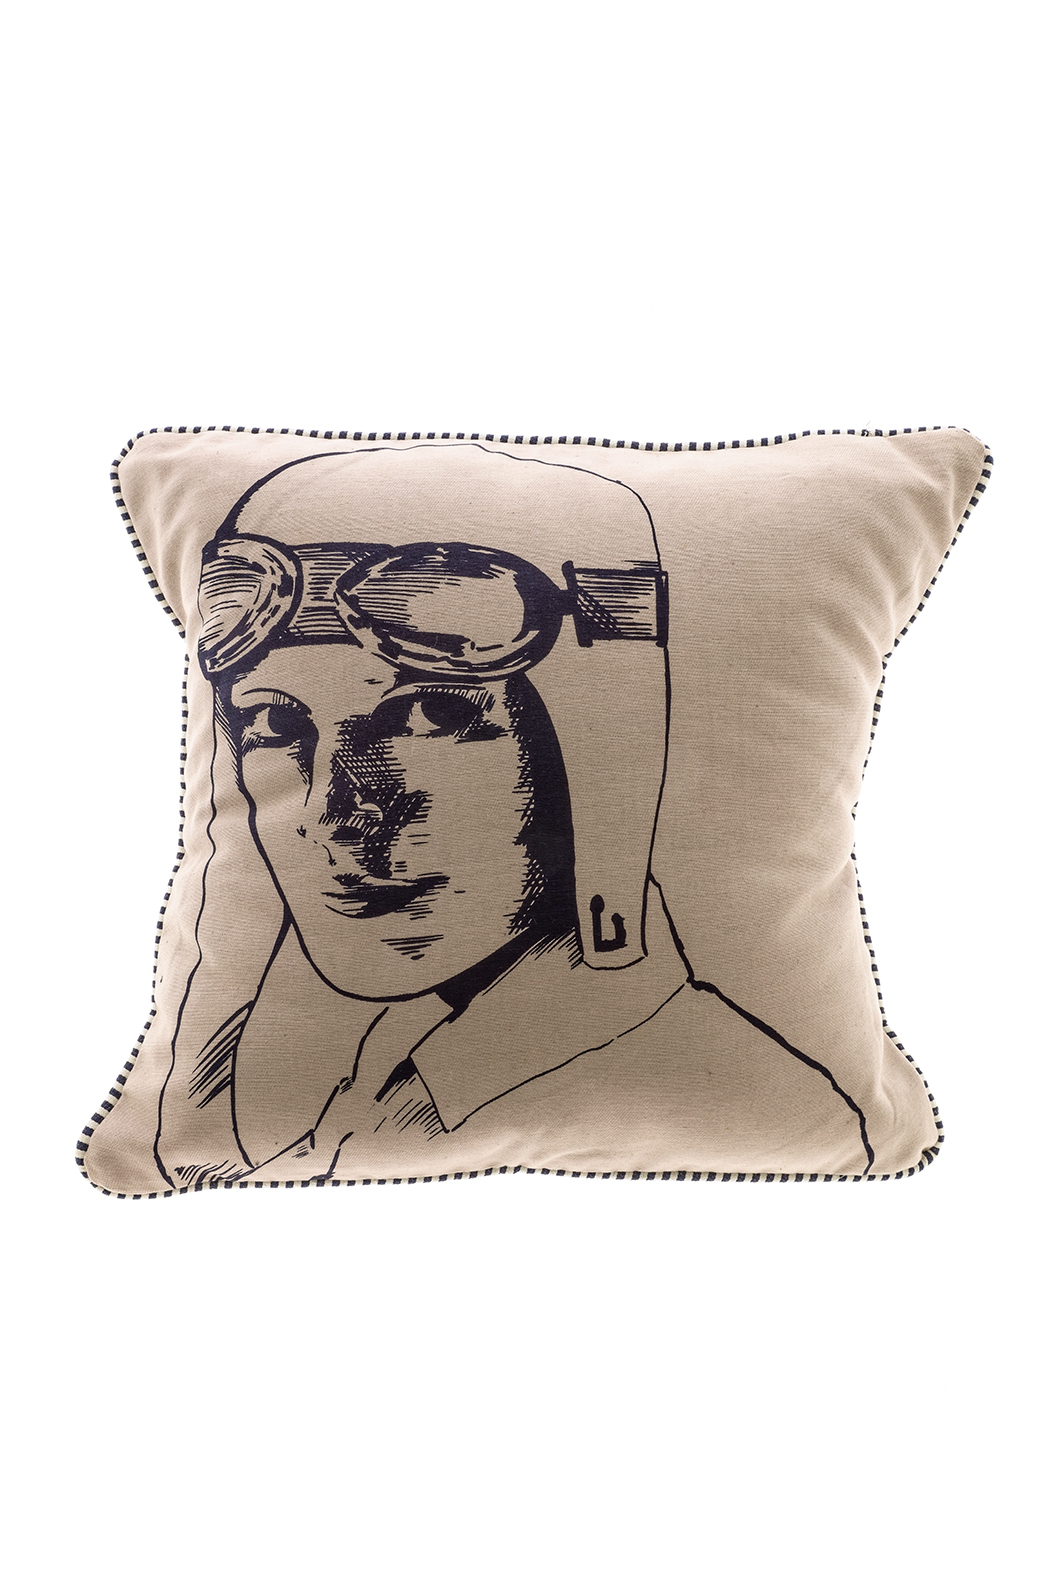 Spitfire Girl Amelia Earhart Pillow - Main Image